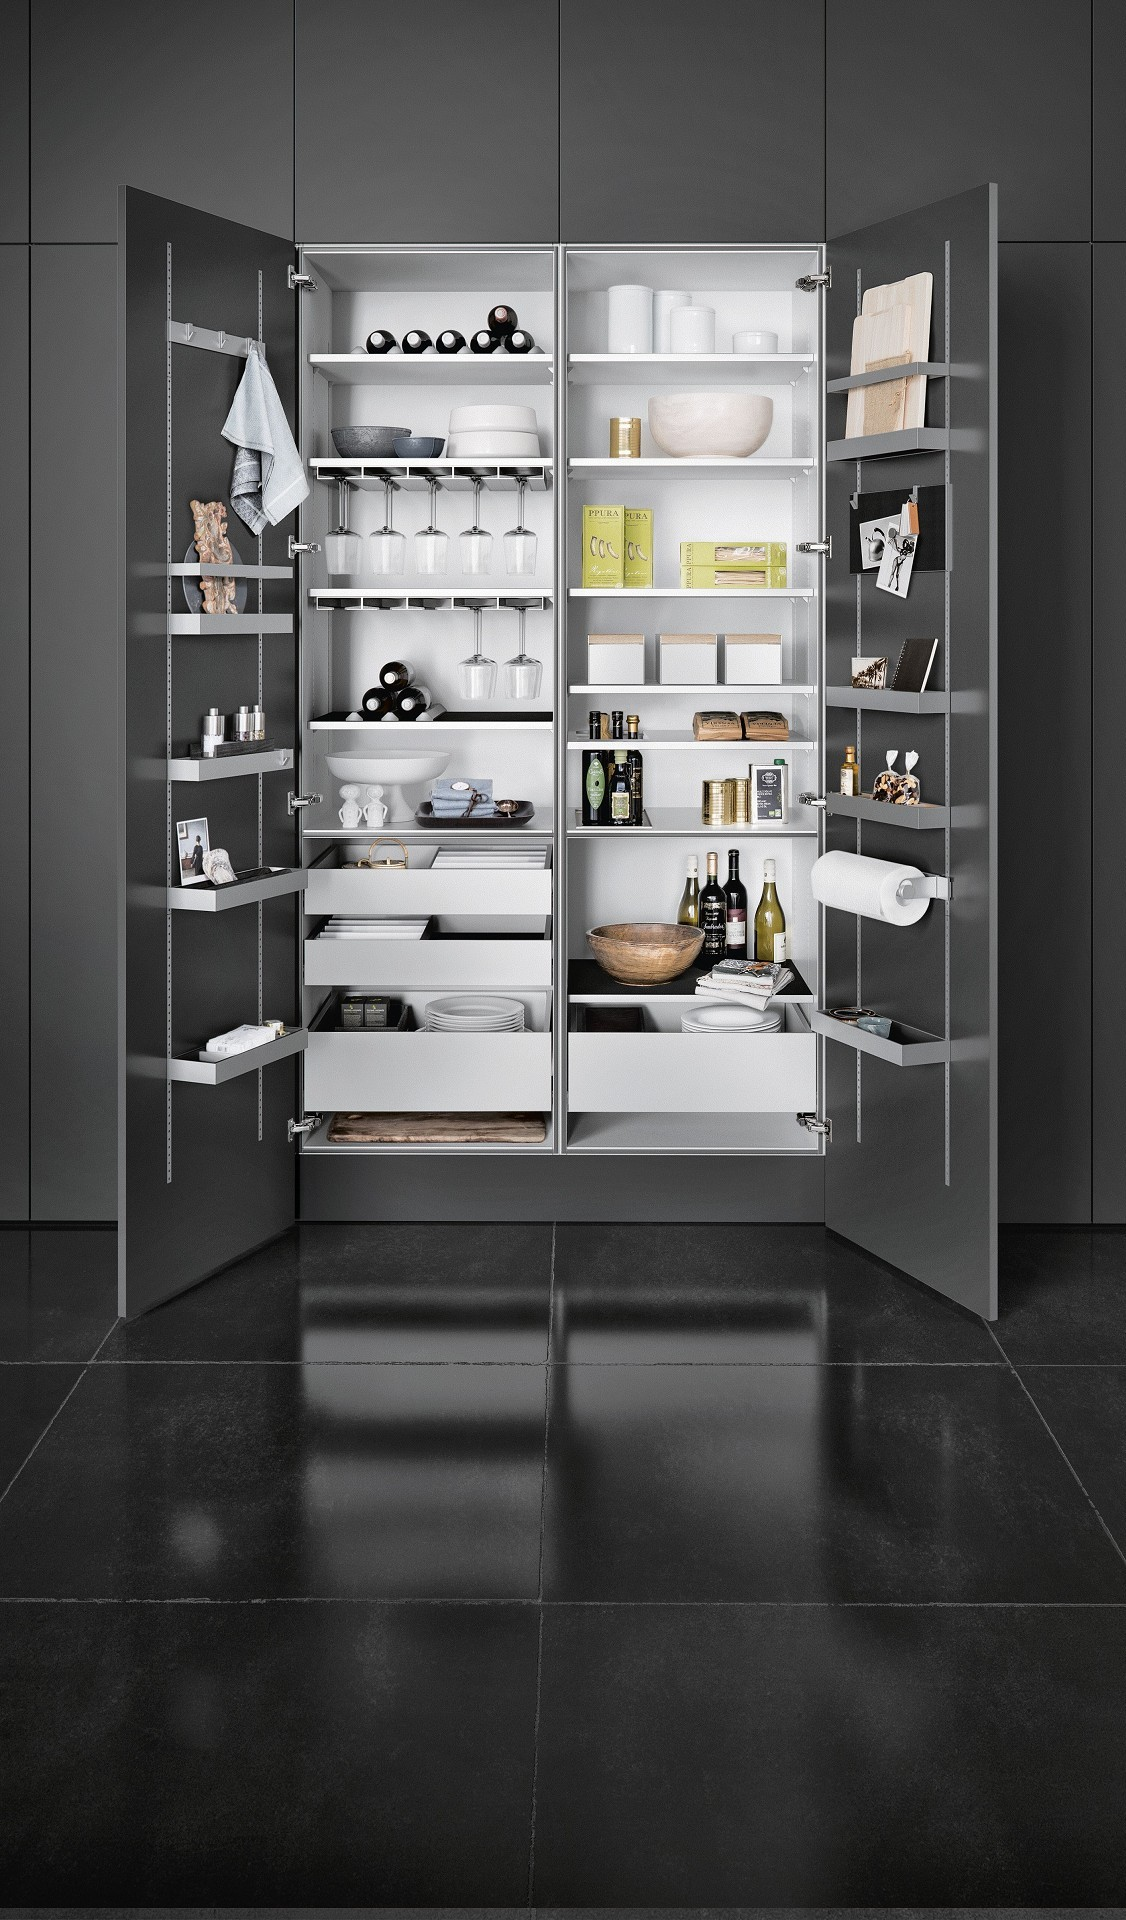 SieMatic MultiMatic interior organization system for tall cabinets offers storage space for jars, glasses, dinnerware and supplies